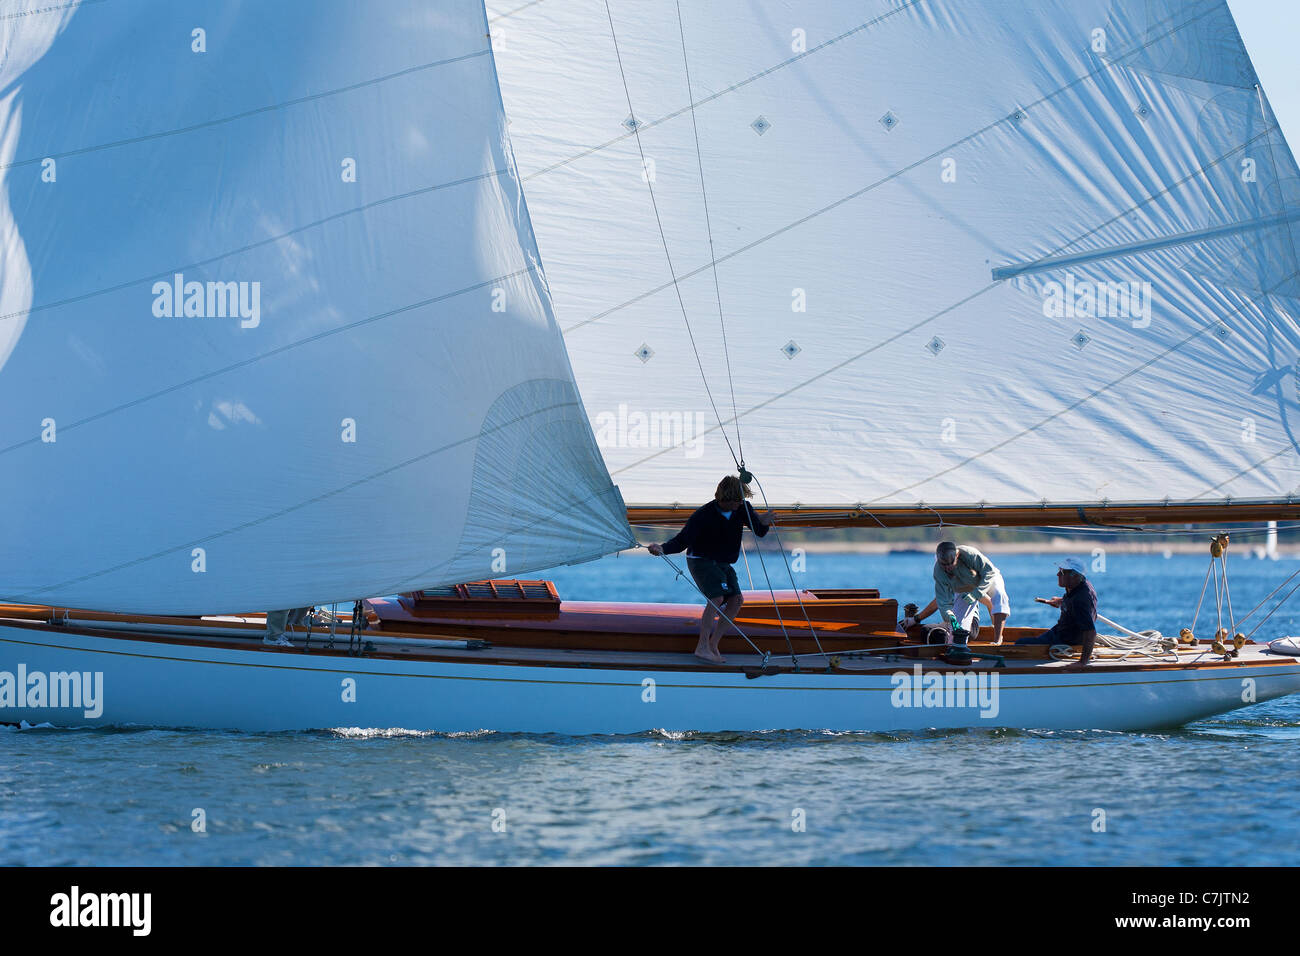 A crew pulls the tack of the headsail in after completing a tack on board the William Fife designed yacht Clio - Stock Image